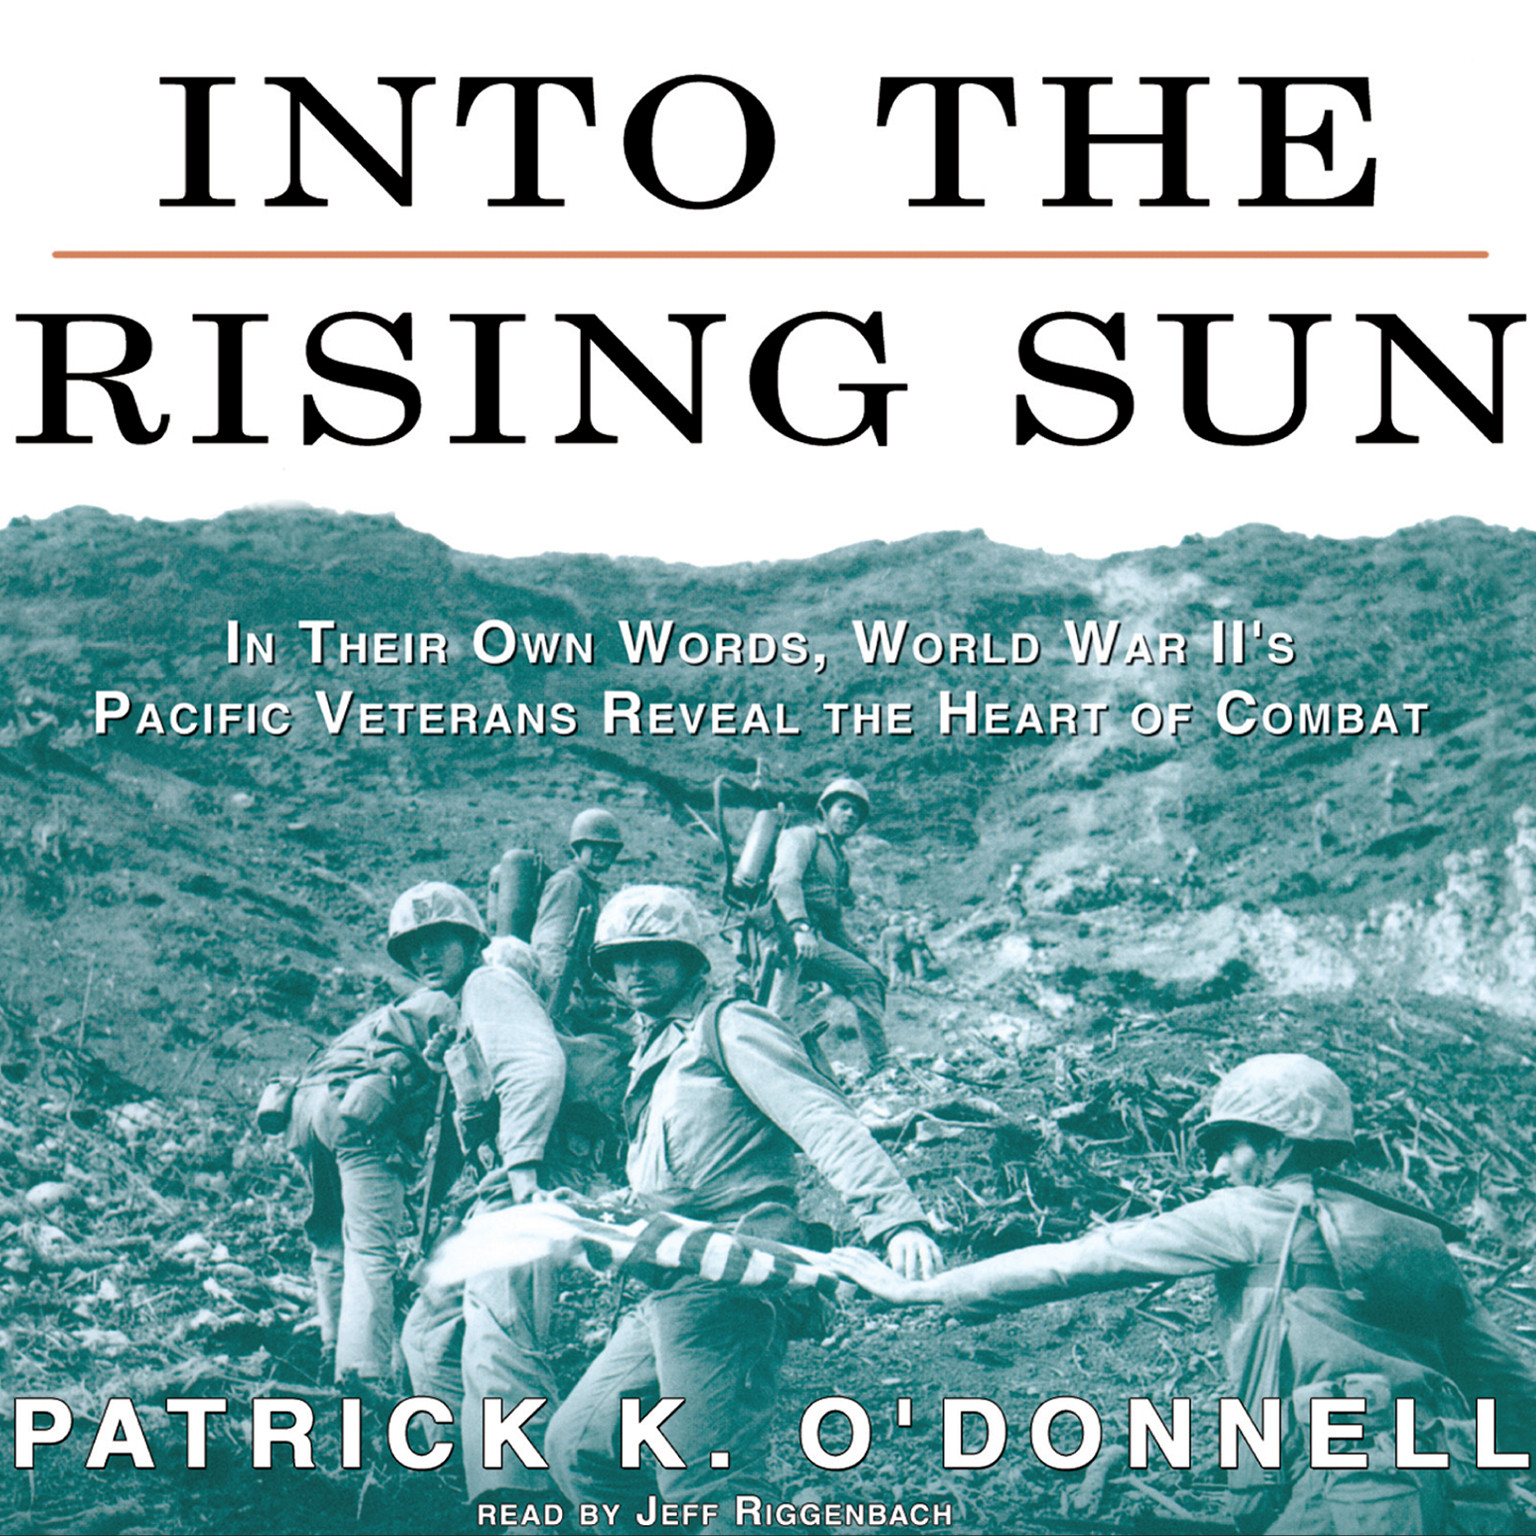 Printable Into the Rising Sun: In Their Own Words, World War II's Pacific Veterans Reveal the Heart of Combat Audiobook Cover Art